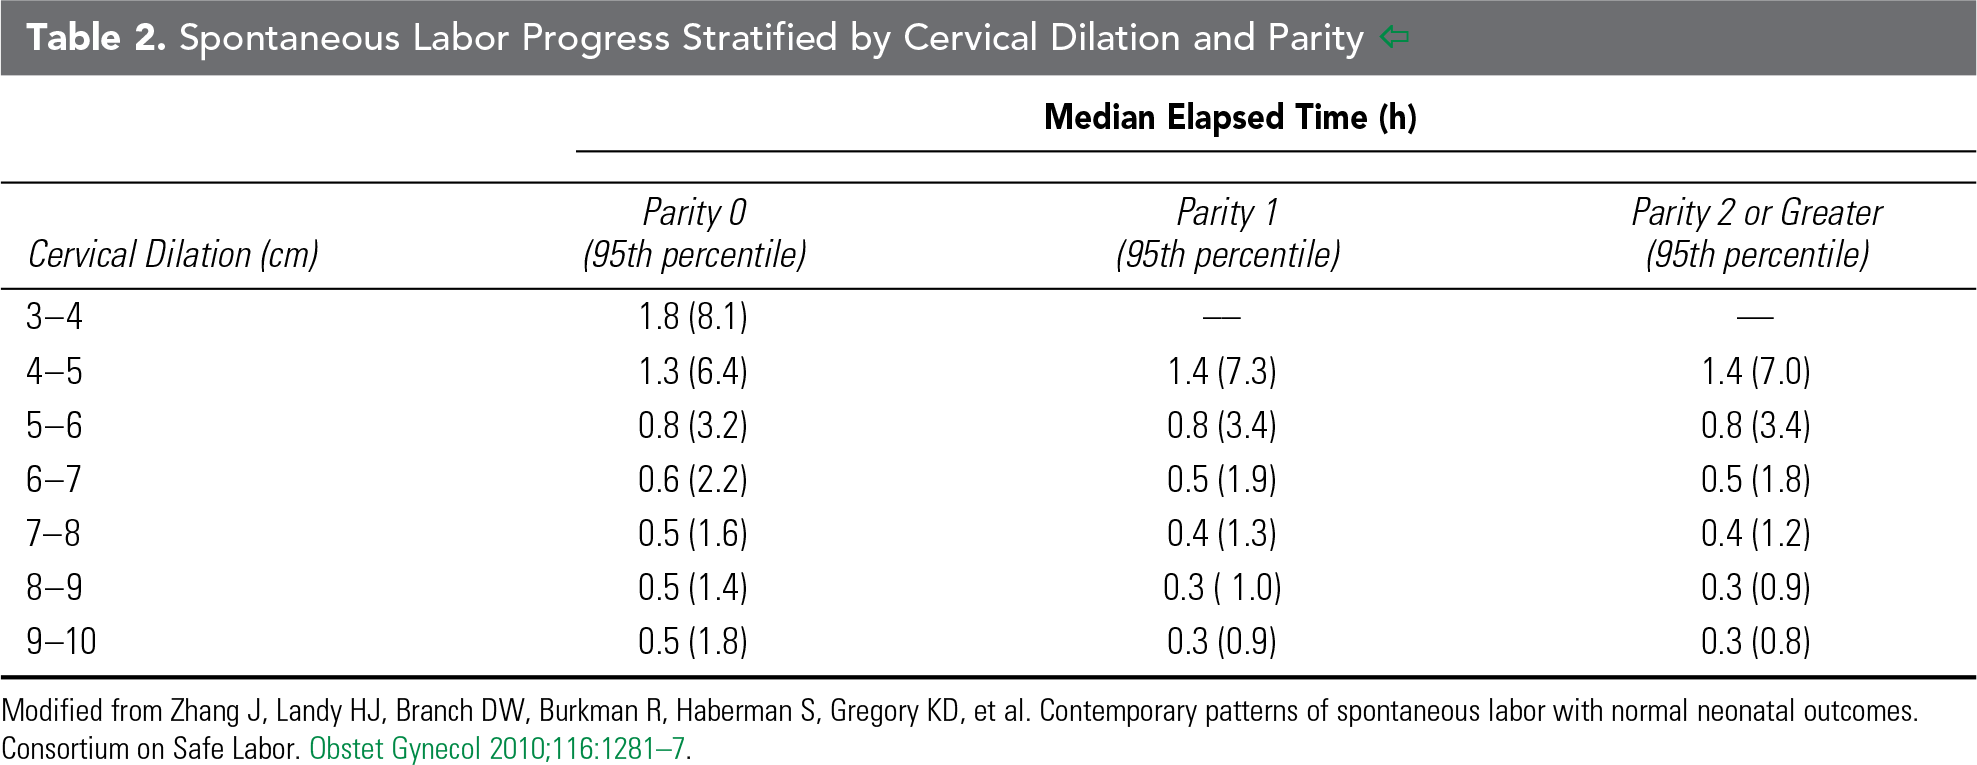 Table 2. Spontaneous Labor Progress Stratified by Cervical Dilation and Parity